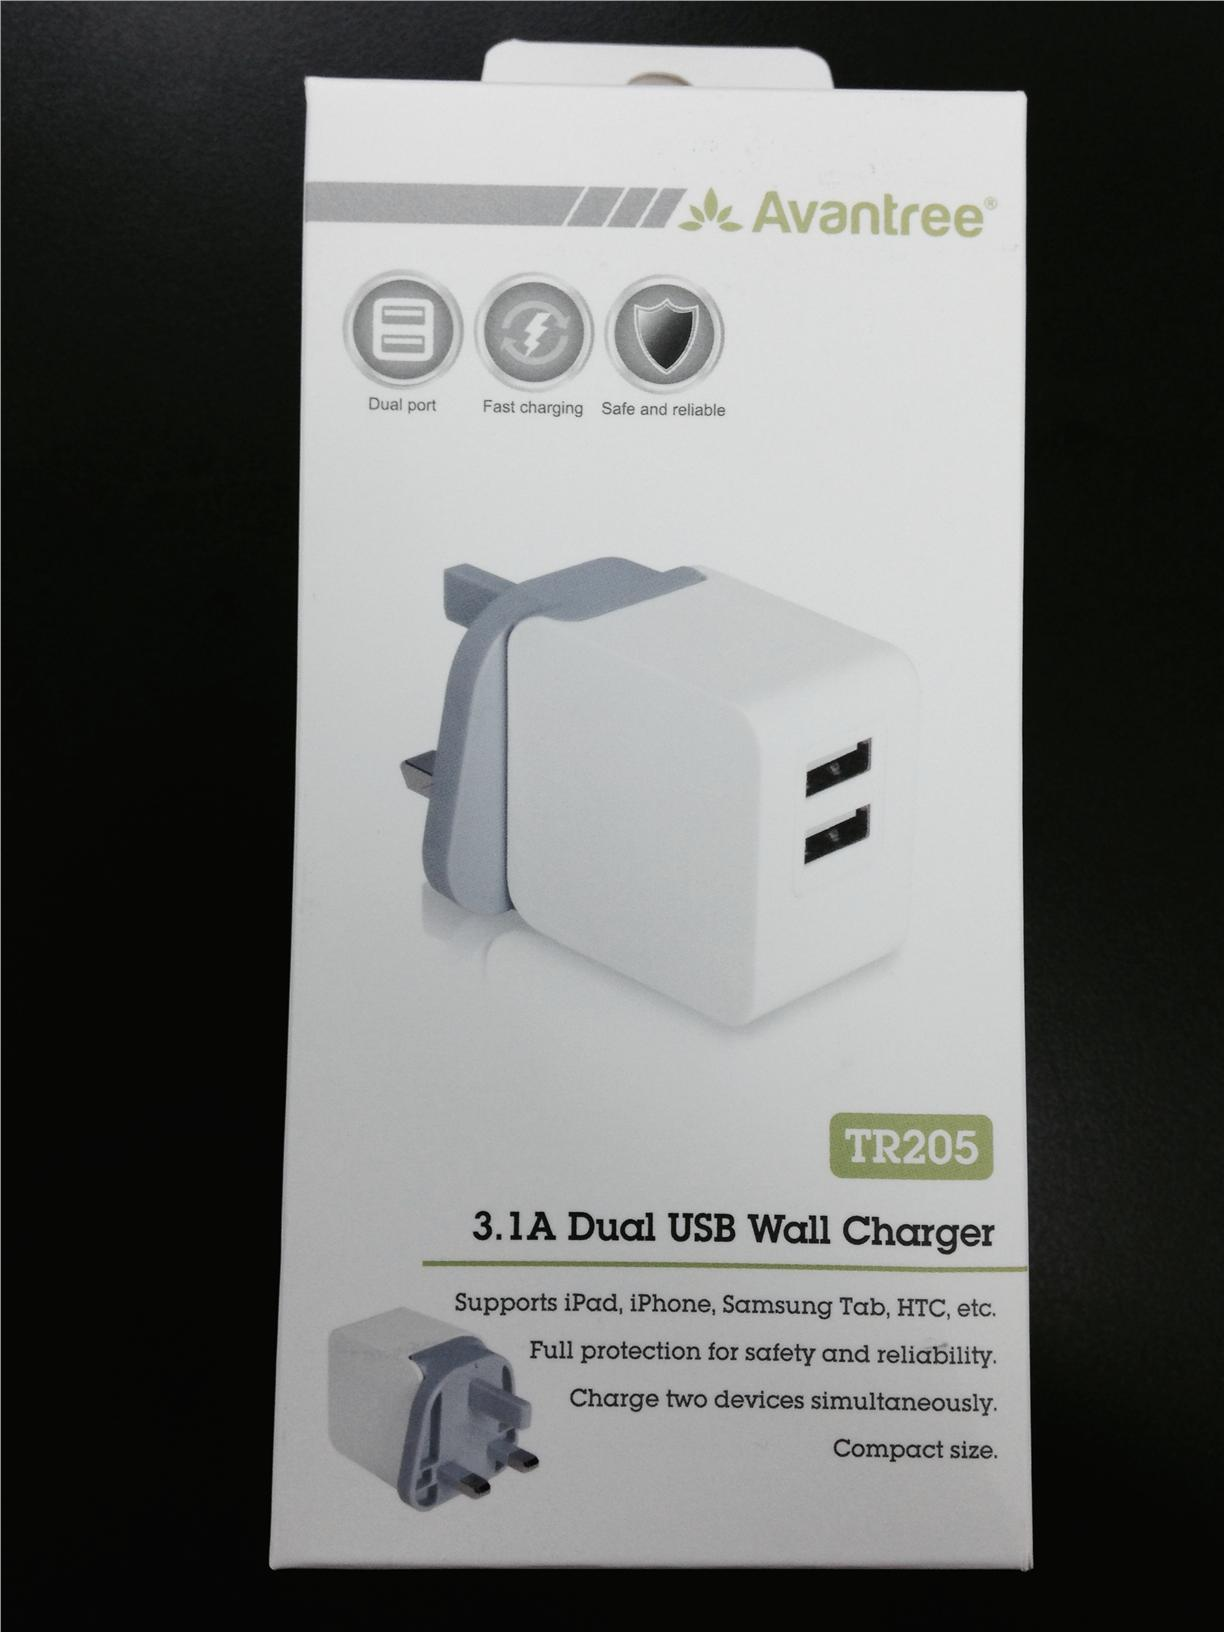 ORIGINAL AVANTREE TR205 Dual USB Wall Charger ~3.1A Fast Charging